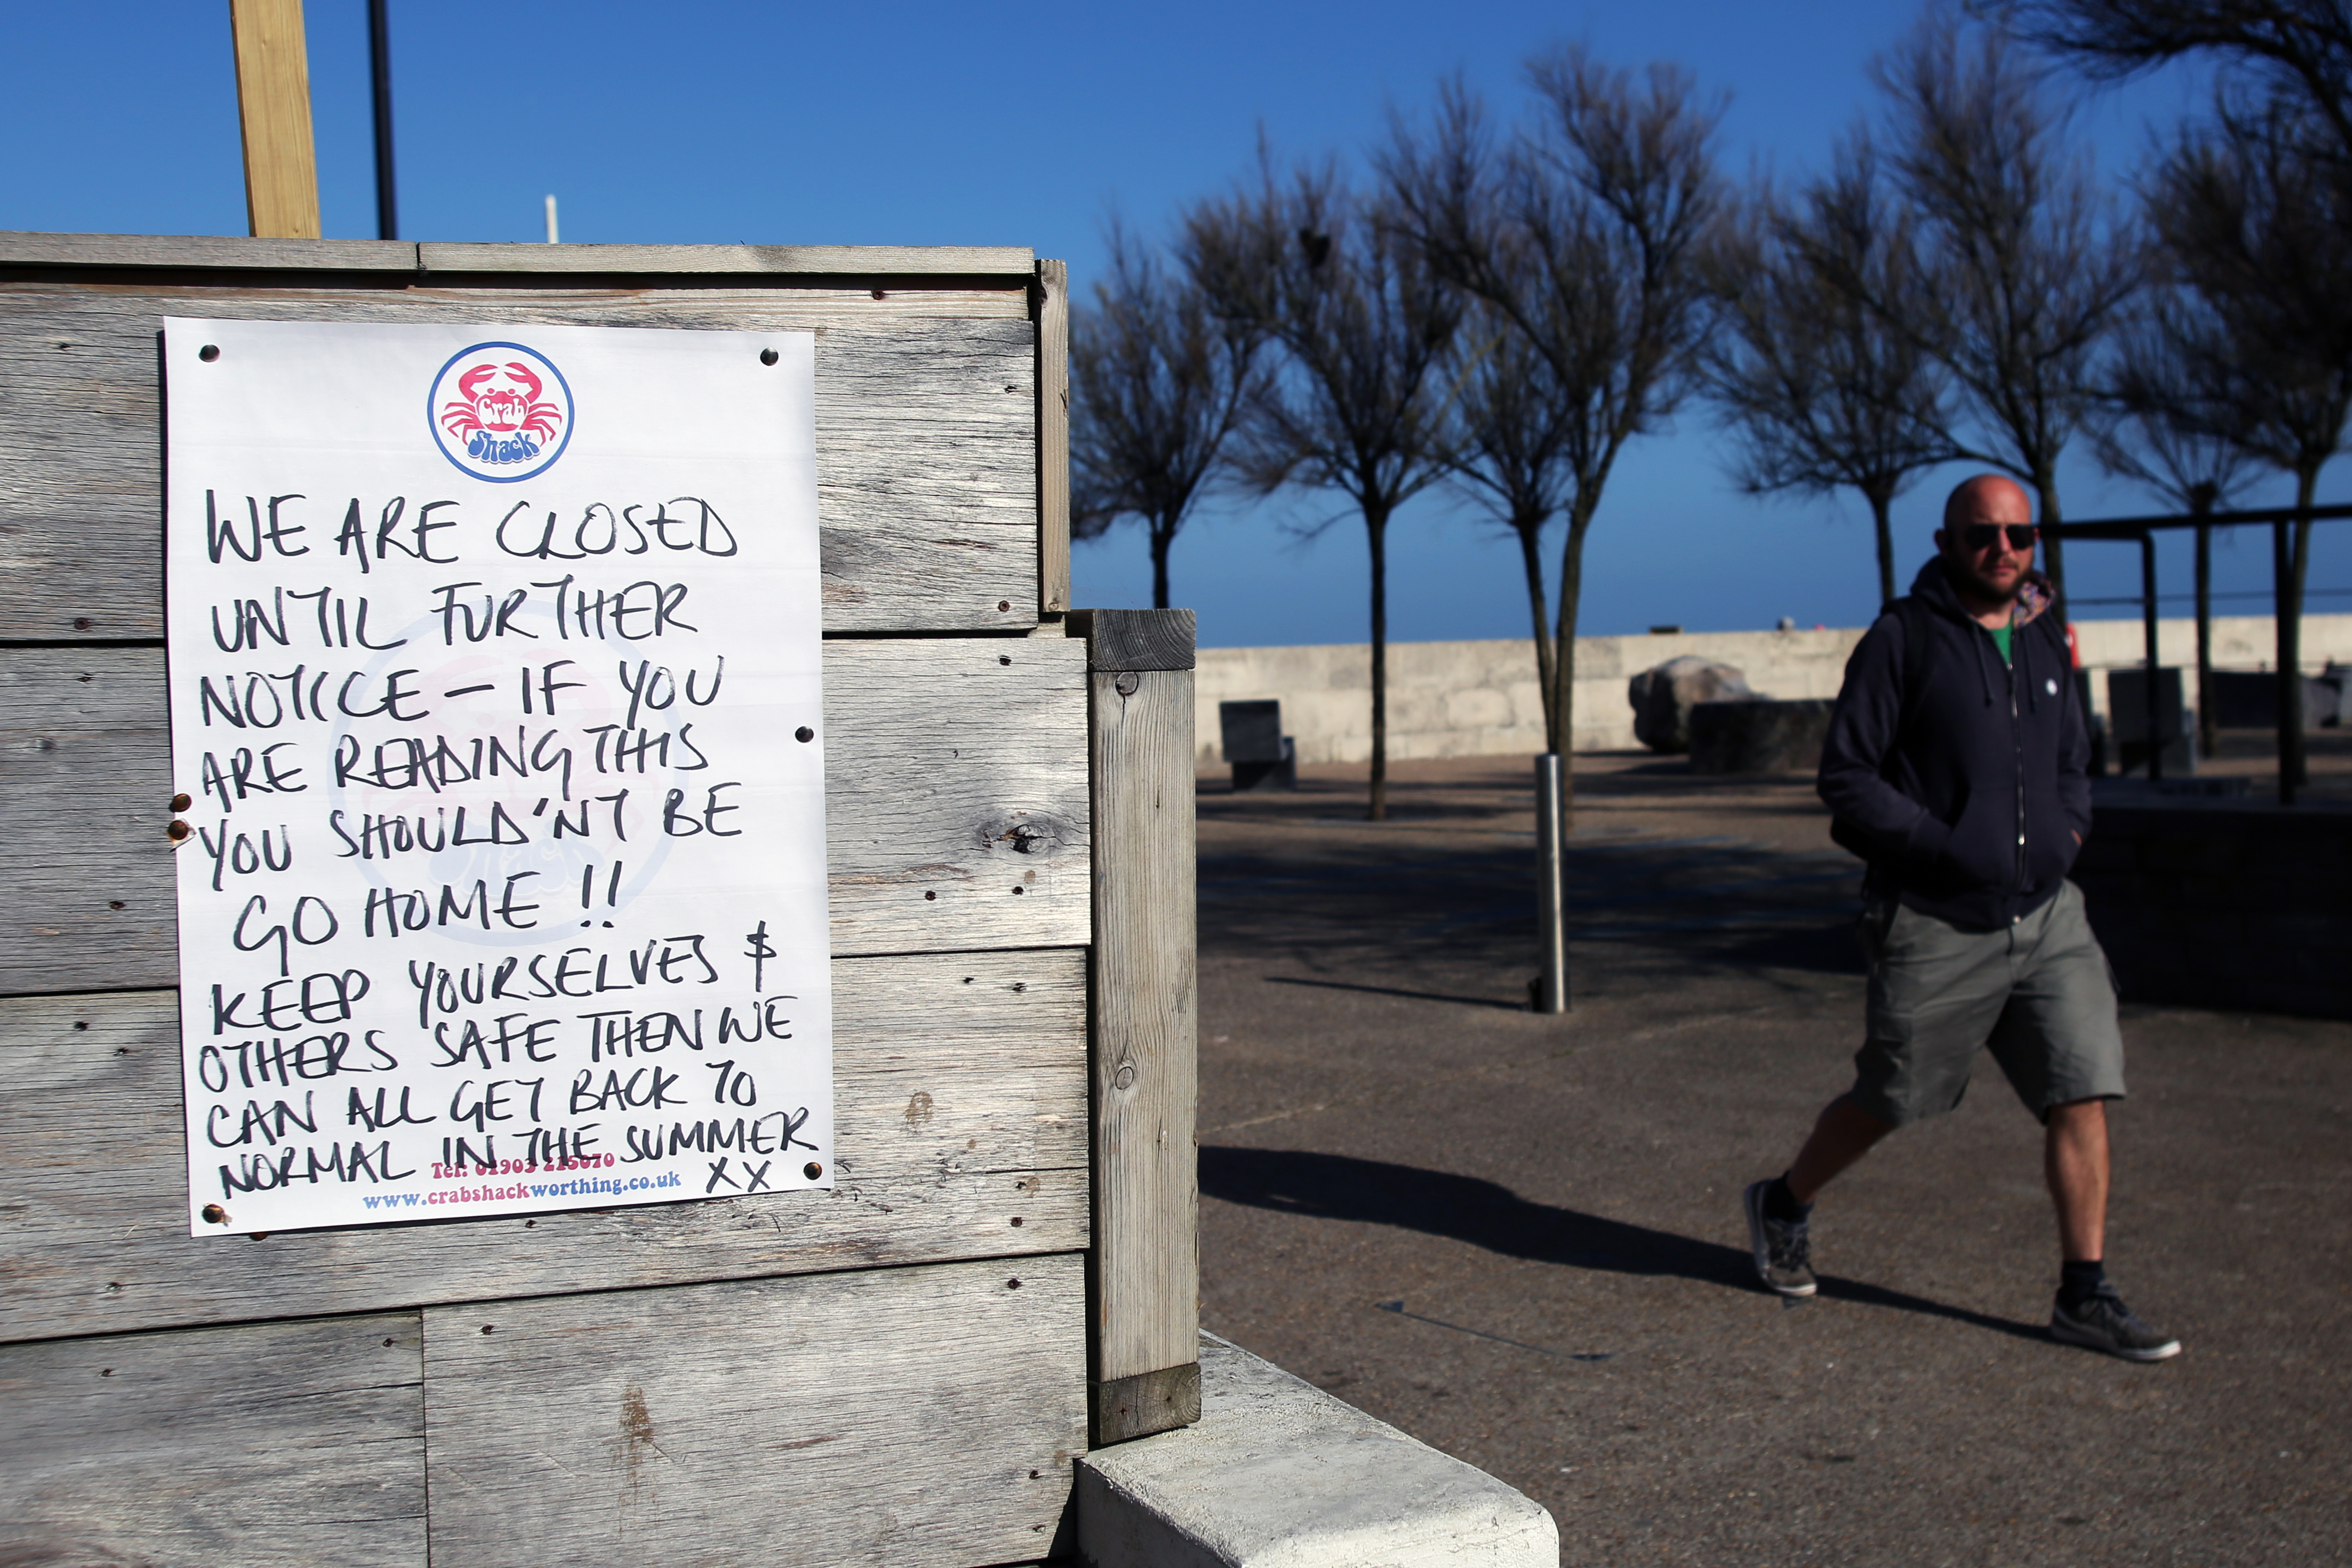 A man walks past a 'we are closed' sign at Crabshack in Worthing as the UK continues in lockdown to help curb the spread of the coronavirus.